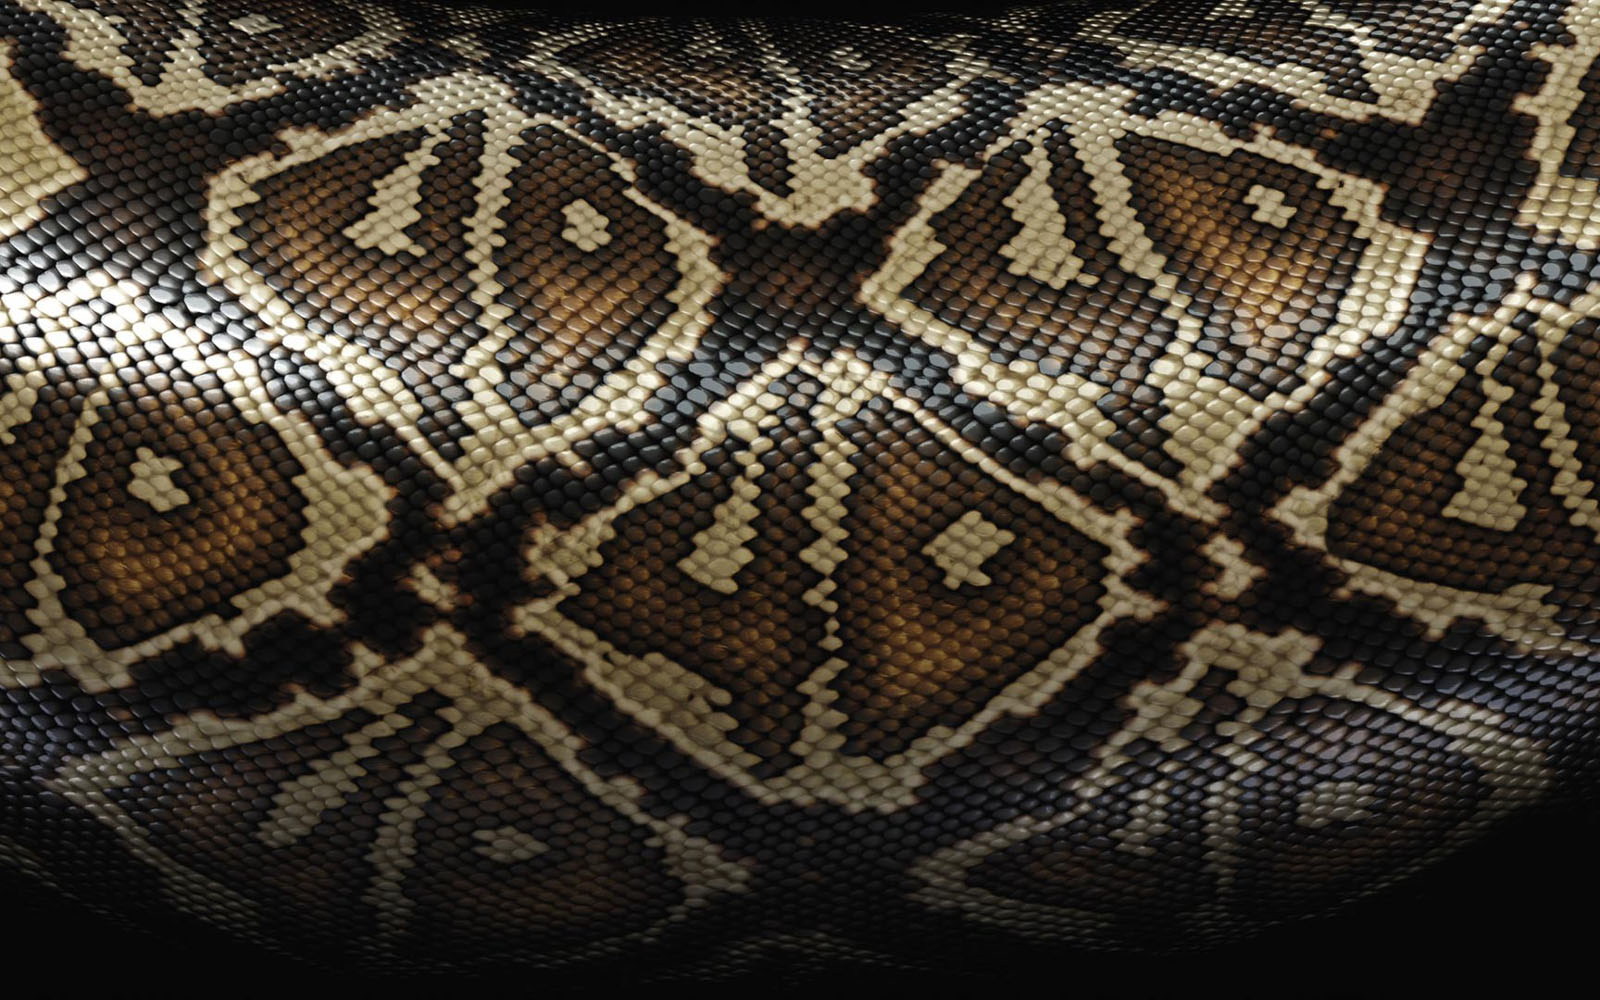 Reptile Skin Wallpaper